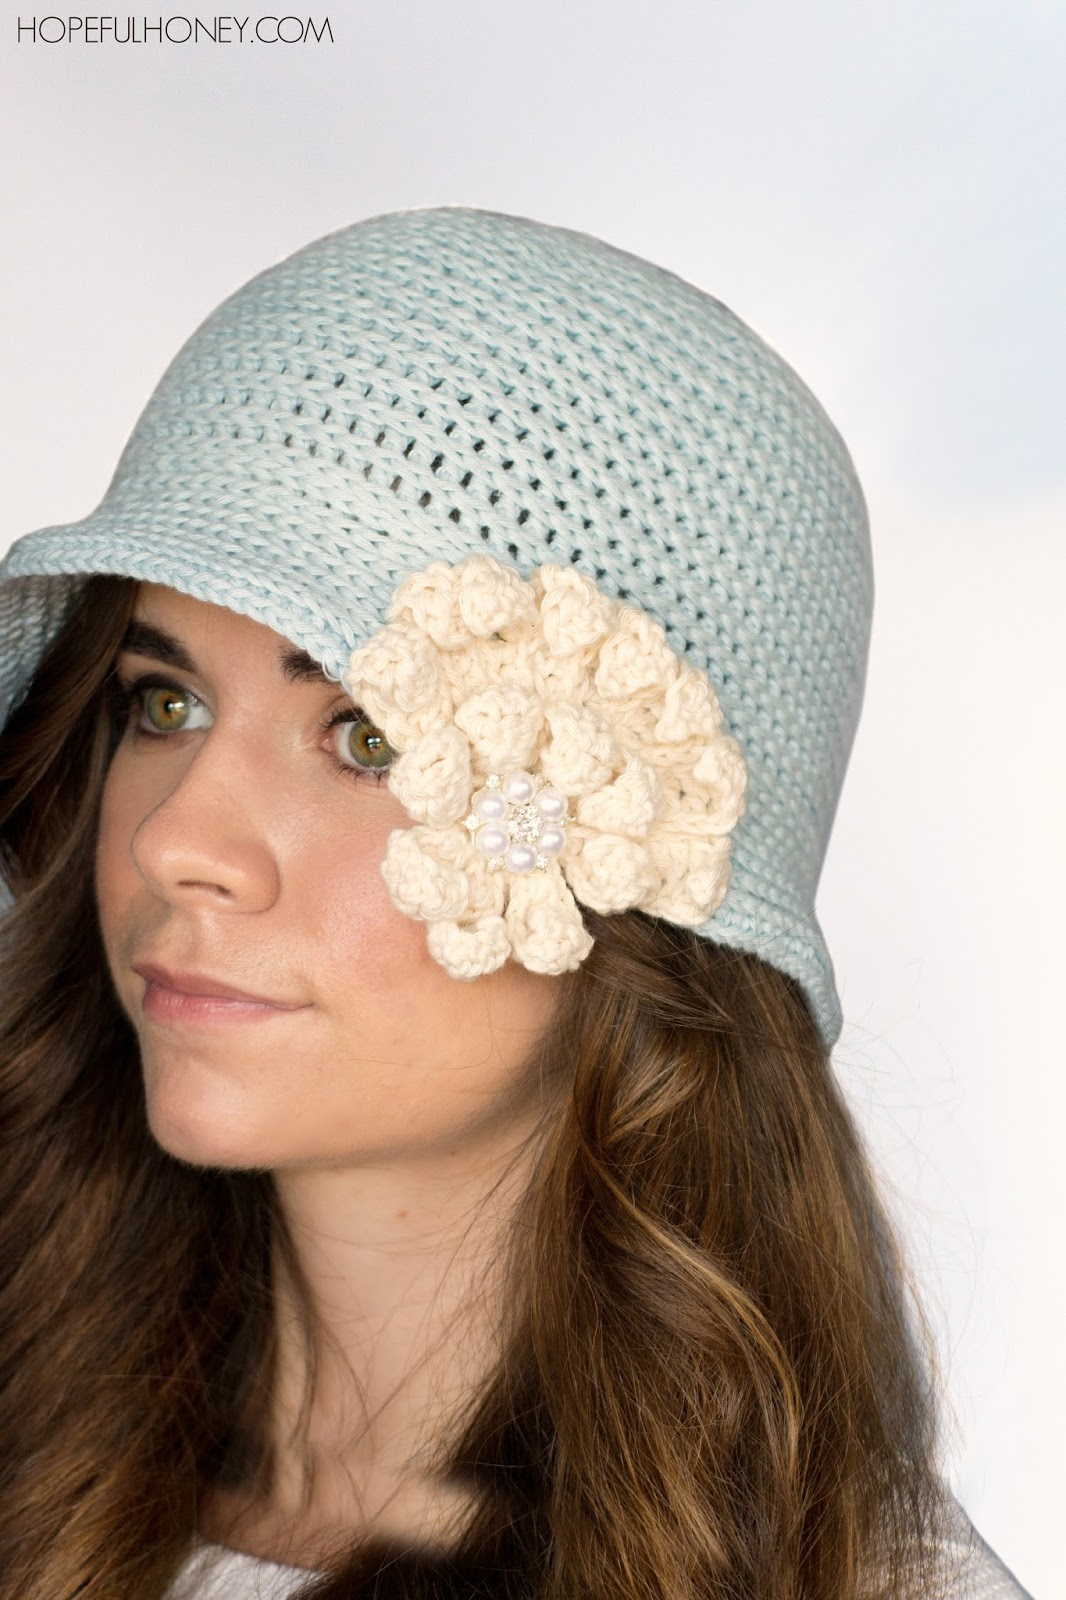 Crocheting Pronunciation : Craft, Crochet, Create: 1920s Snowflake Cloche Hat Crochet Pattern ...